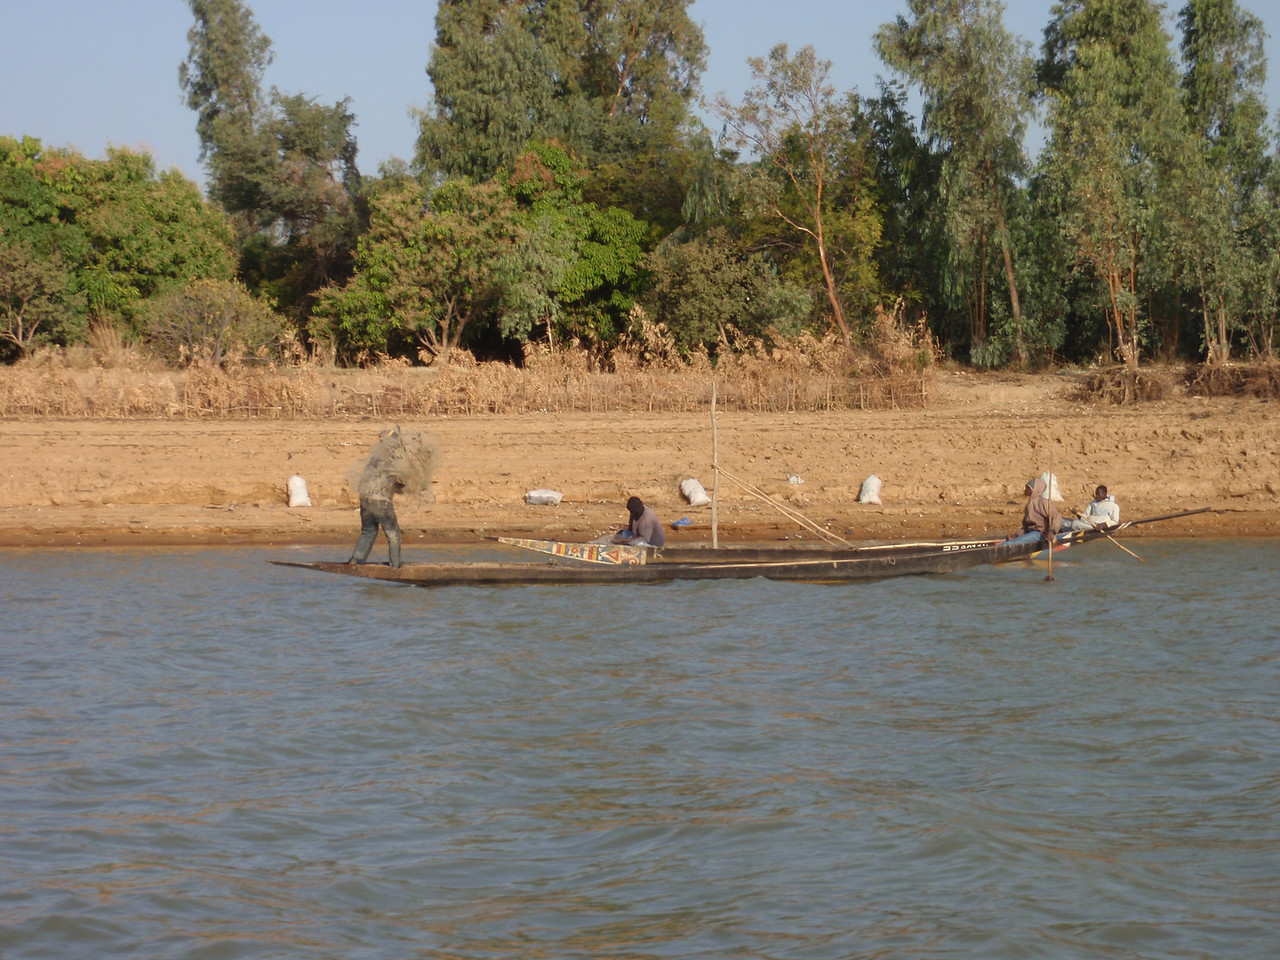 358_Niger River  Fisherman Reaping the Bounty of this Lifeblood